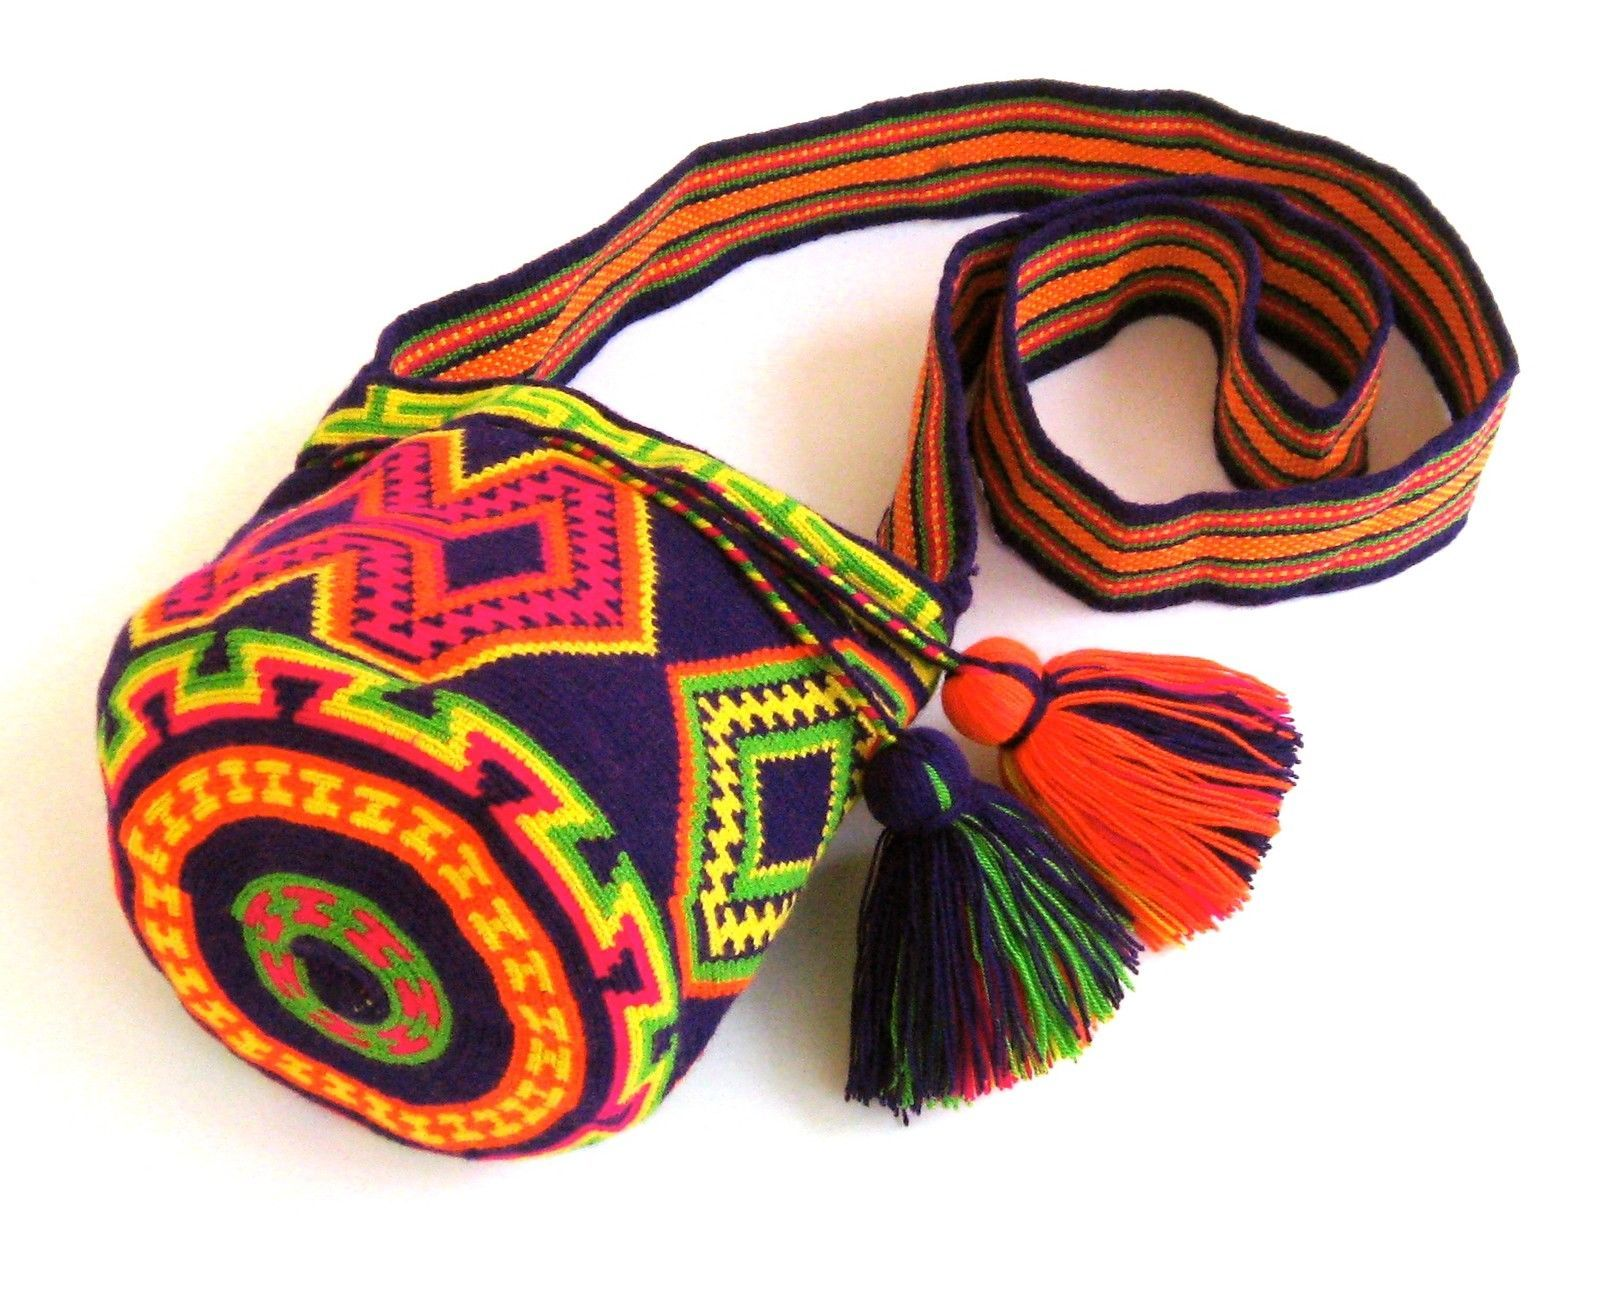 medium resolution of mochila wayuu small size bag tight 1 2 stitch crochet handmade ebay 64 00